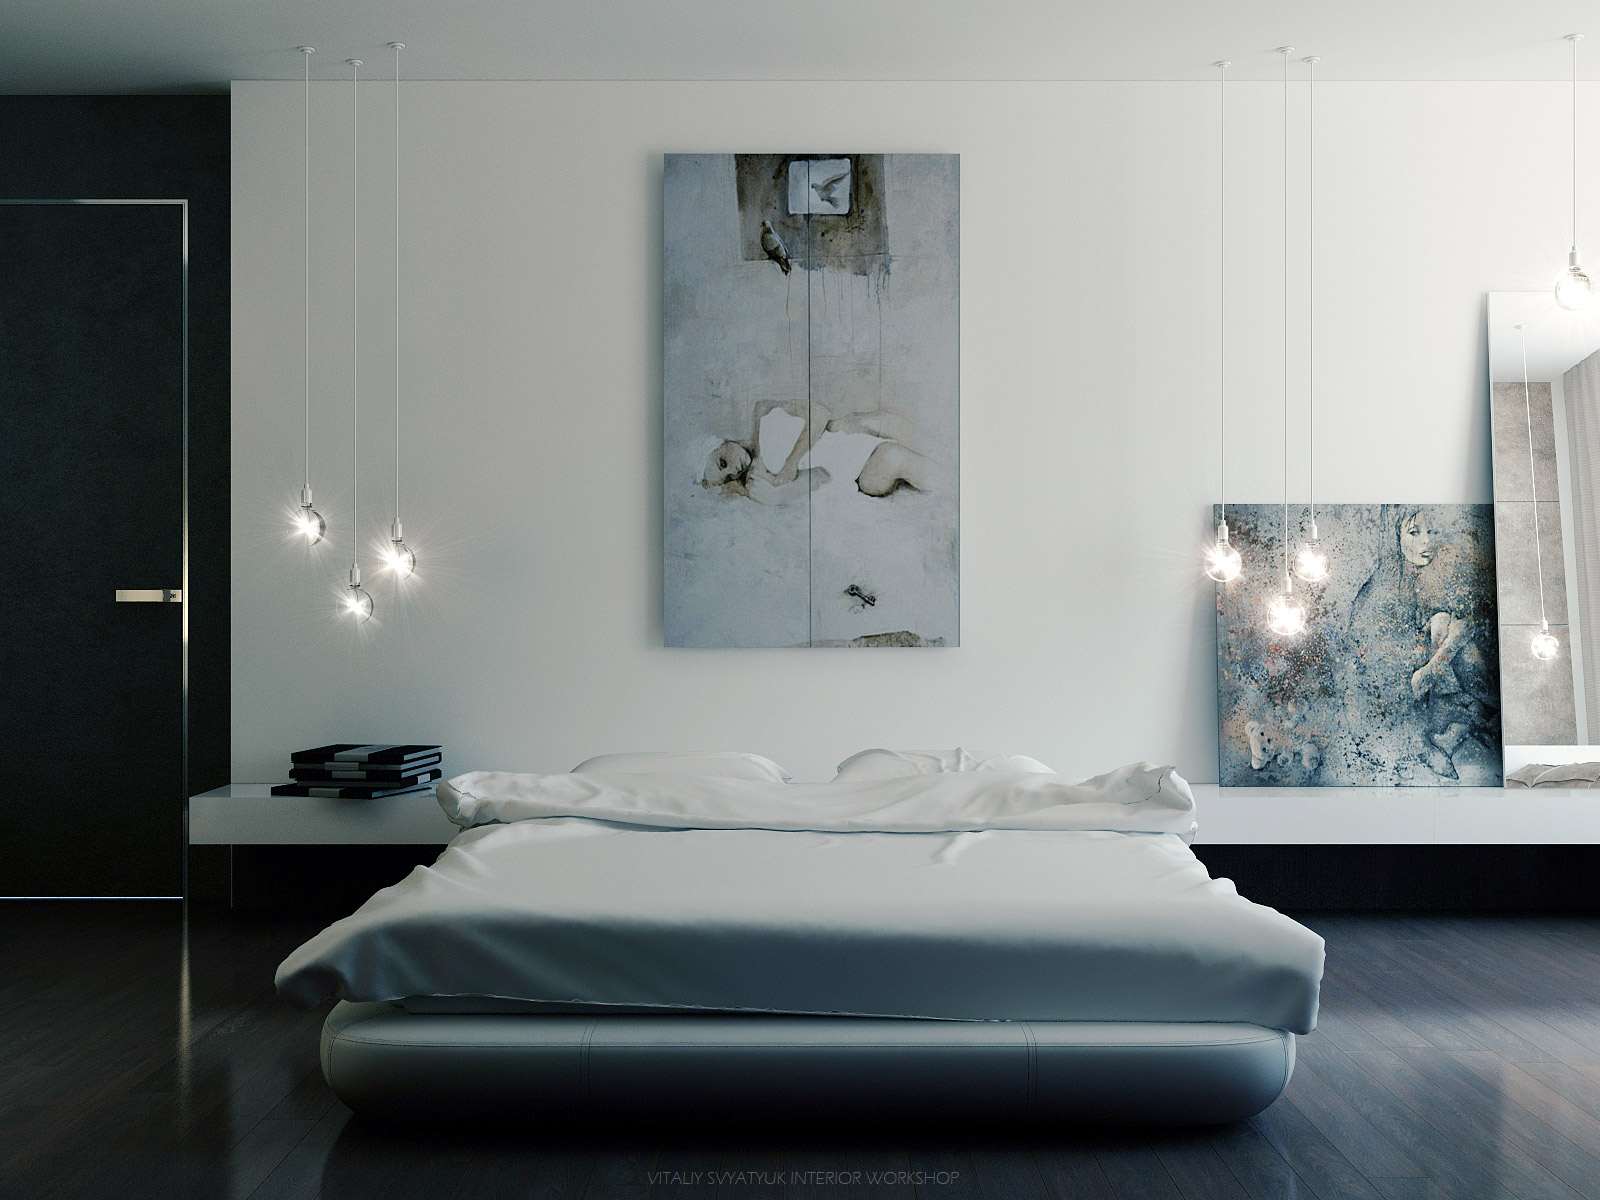 Modern art vitaly svyatyuk cool art cool pallete bedroom for Cool bedroom ideas